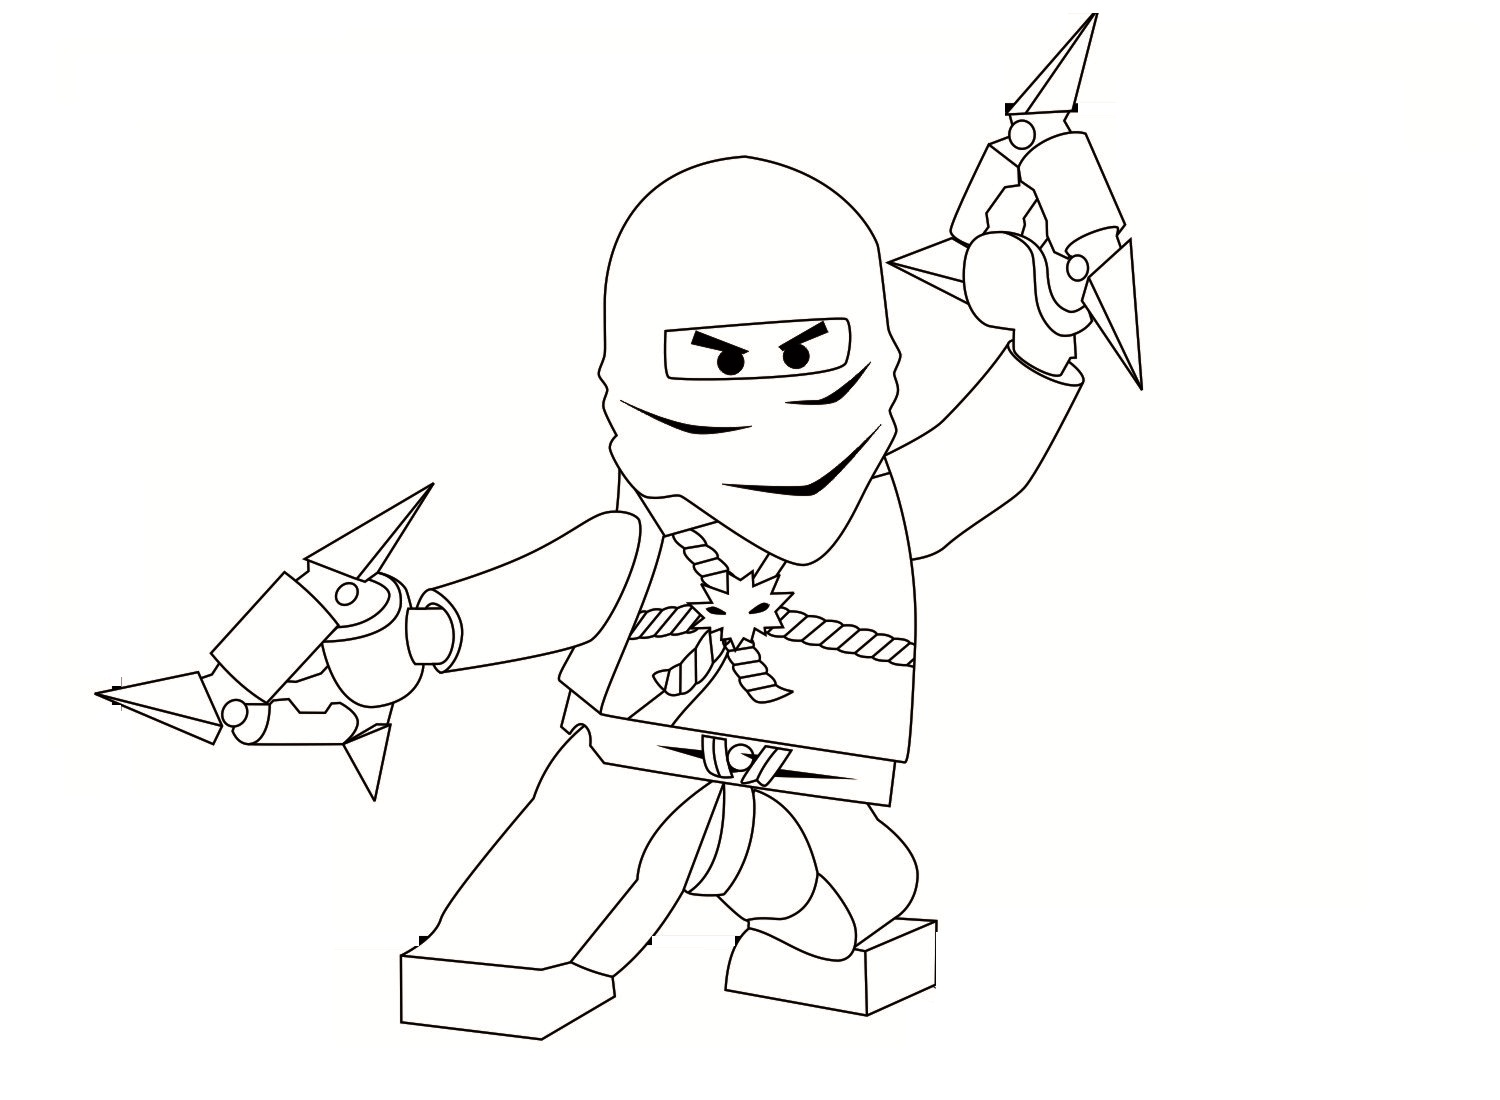 Download Printable Lego Ninjago Coloringkidsorg Ninjago Coloring